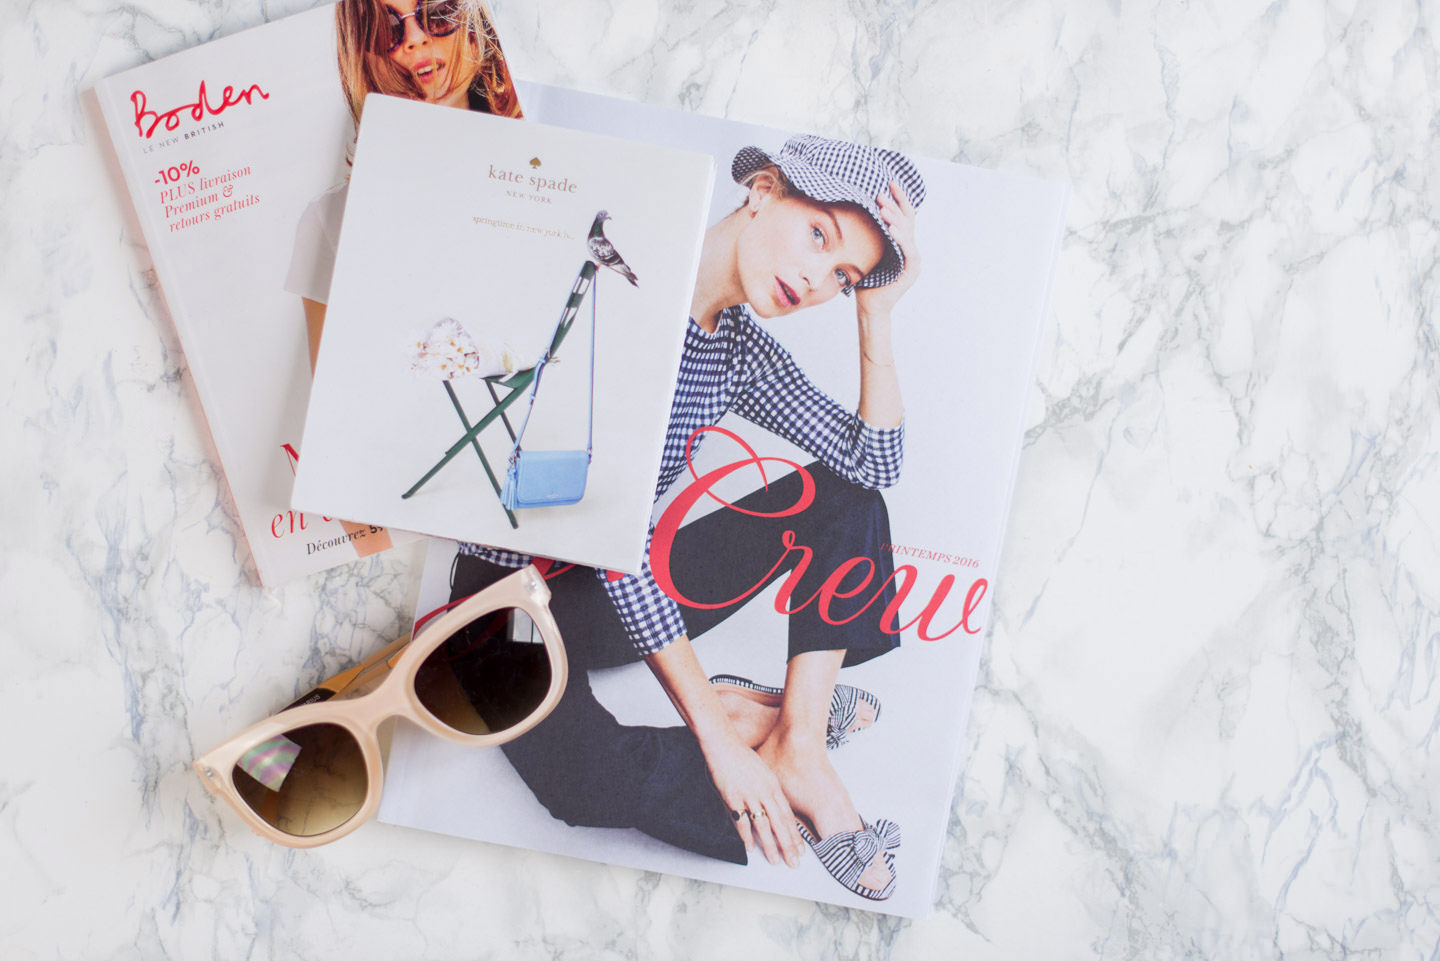 Blog-Mode-And-The-City-Lifestyle-Cinq-Petites-Choses-169-catalogues-jcrew-kate-spade-boden2016